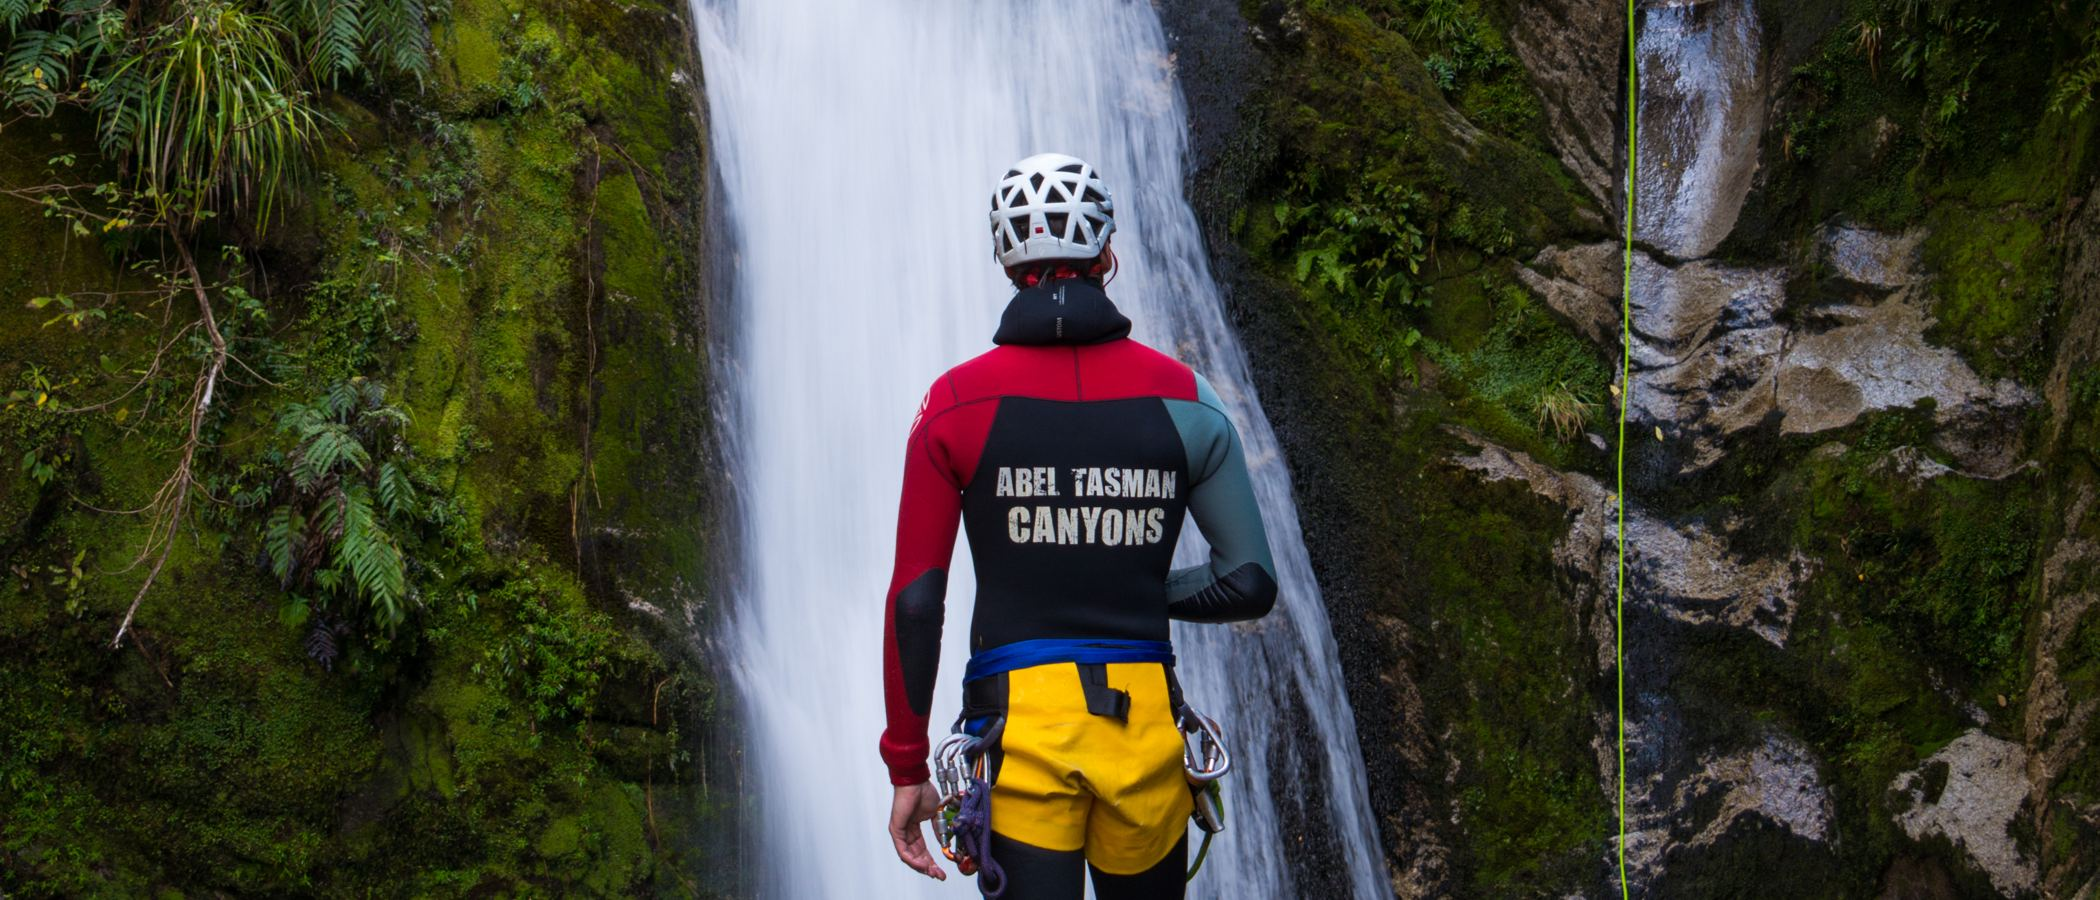 Work Experience Weekend – What is it like to be a canyoning guide?